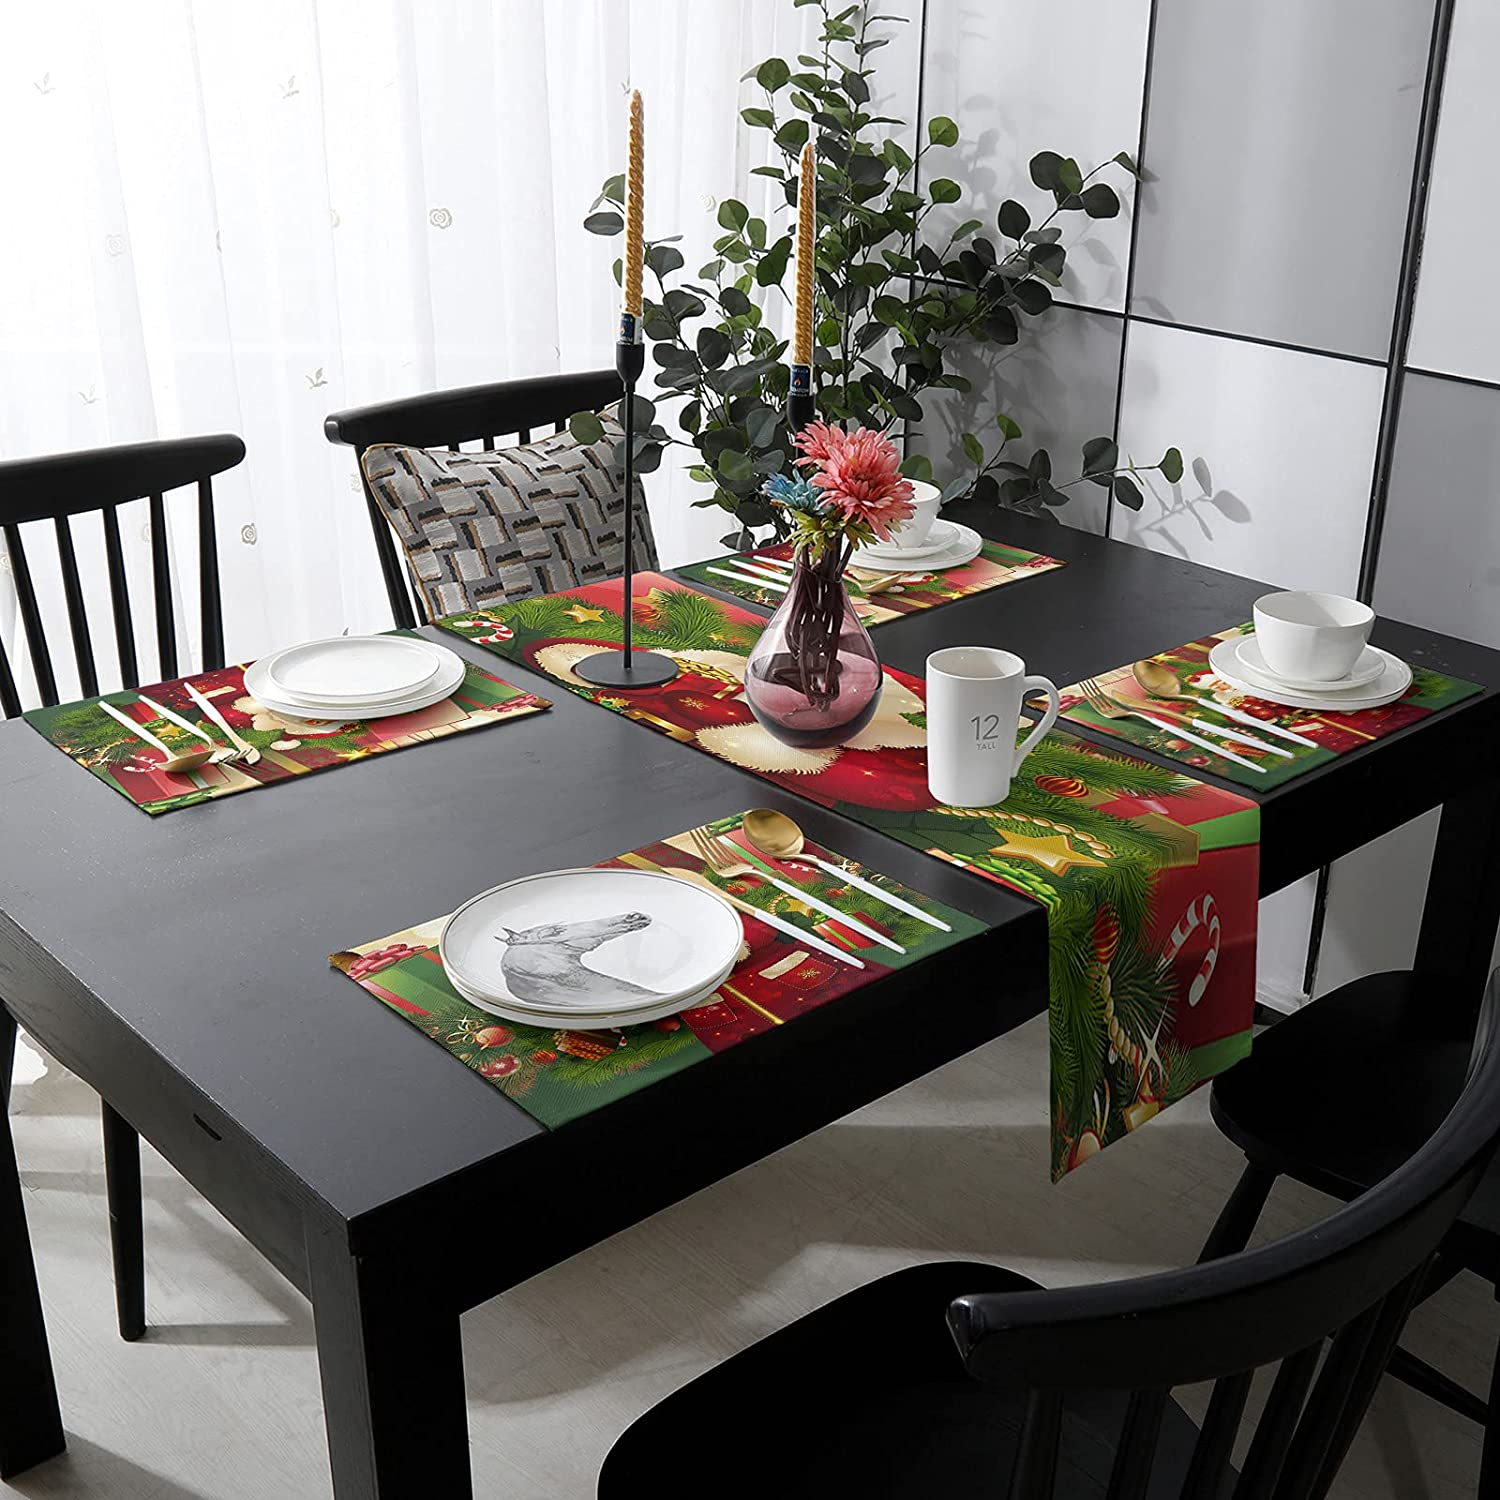 Max 79% OFF Womenfocus El Paso Mall Outdoor Table Runner and Heat-Pr Kitchen 6 Placemats